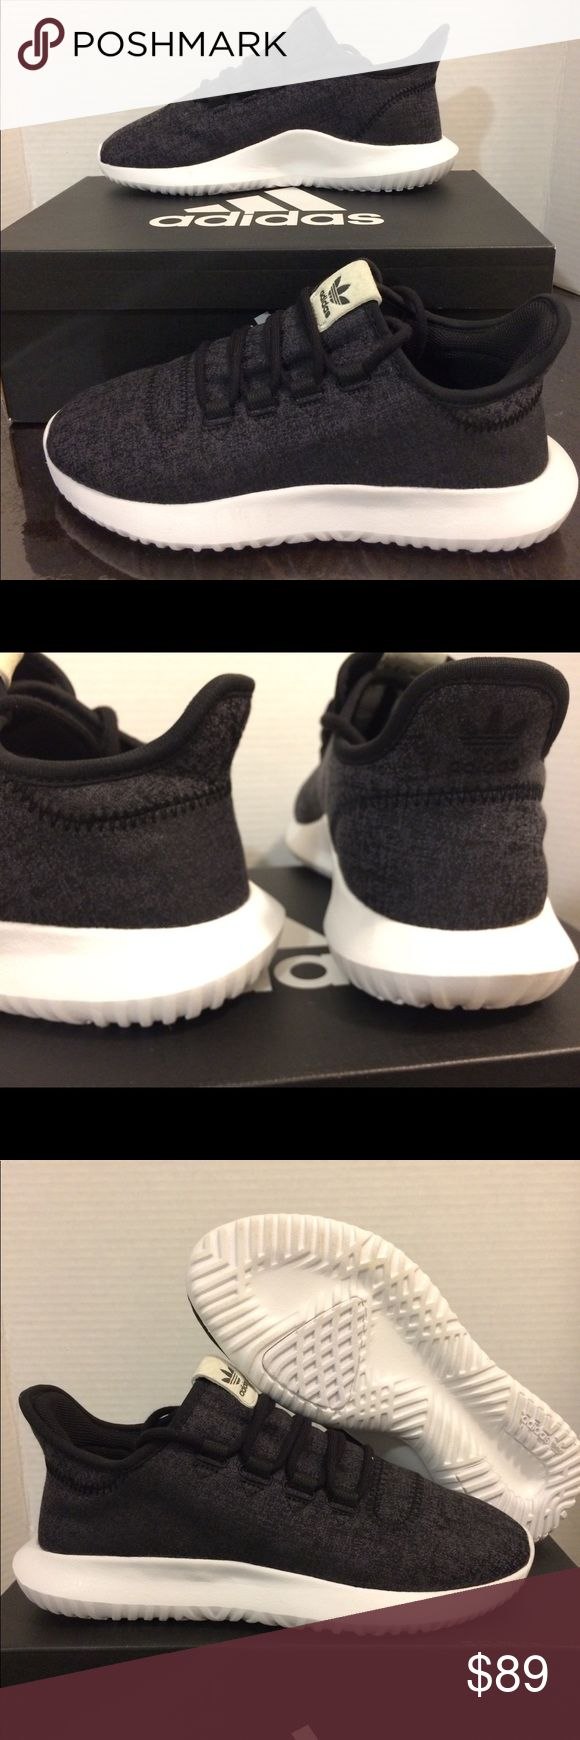 New Adidas Tubular Shadow Charcoal Black unisex New Adidas   Size 7, 8  Very great looking athletic shoes with amazing comfort. Don't end up paying those high prices when you can get them for an affordable price.  No refunds No low ballers Authentic   NMD